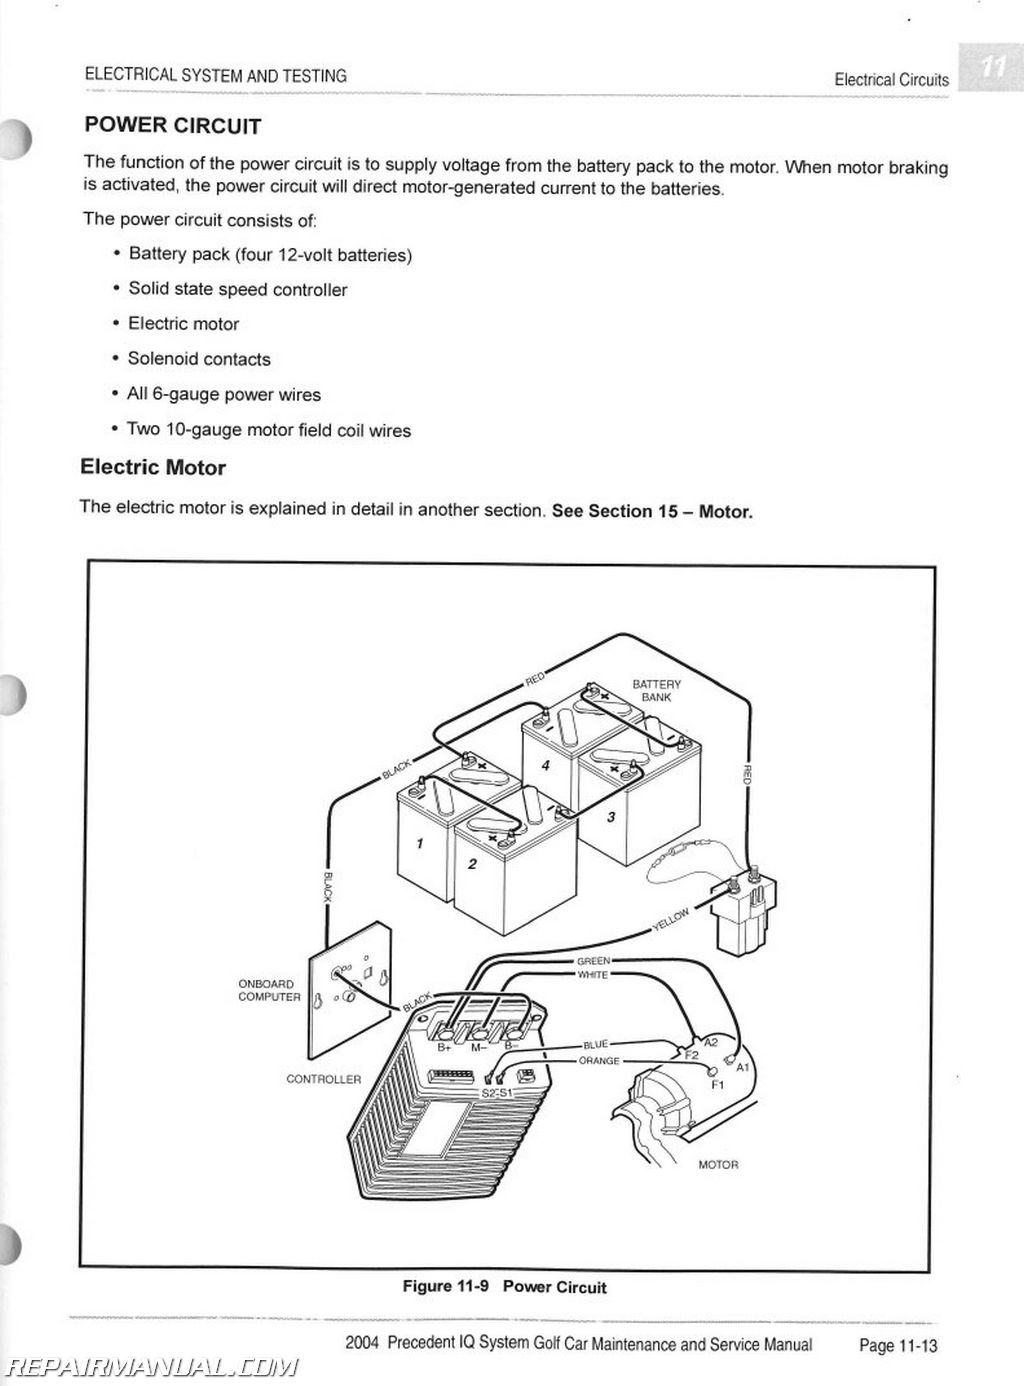 1997 Ezgo Wiring Diagram Golf